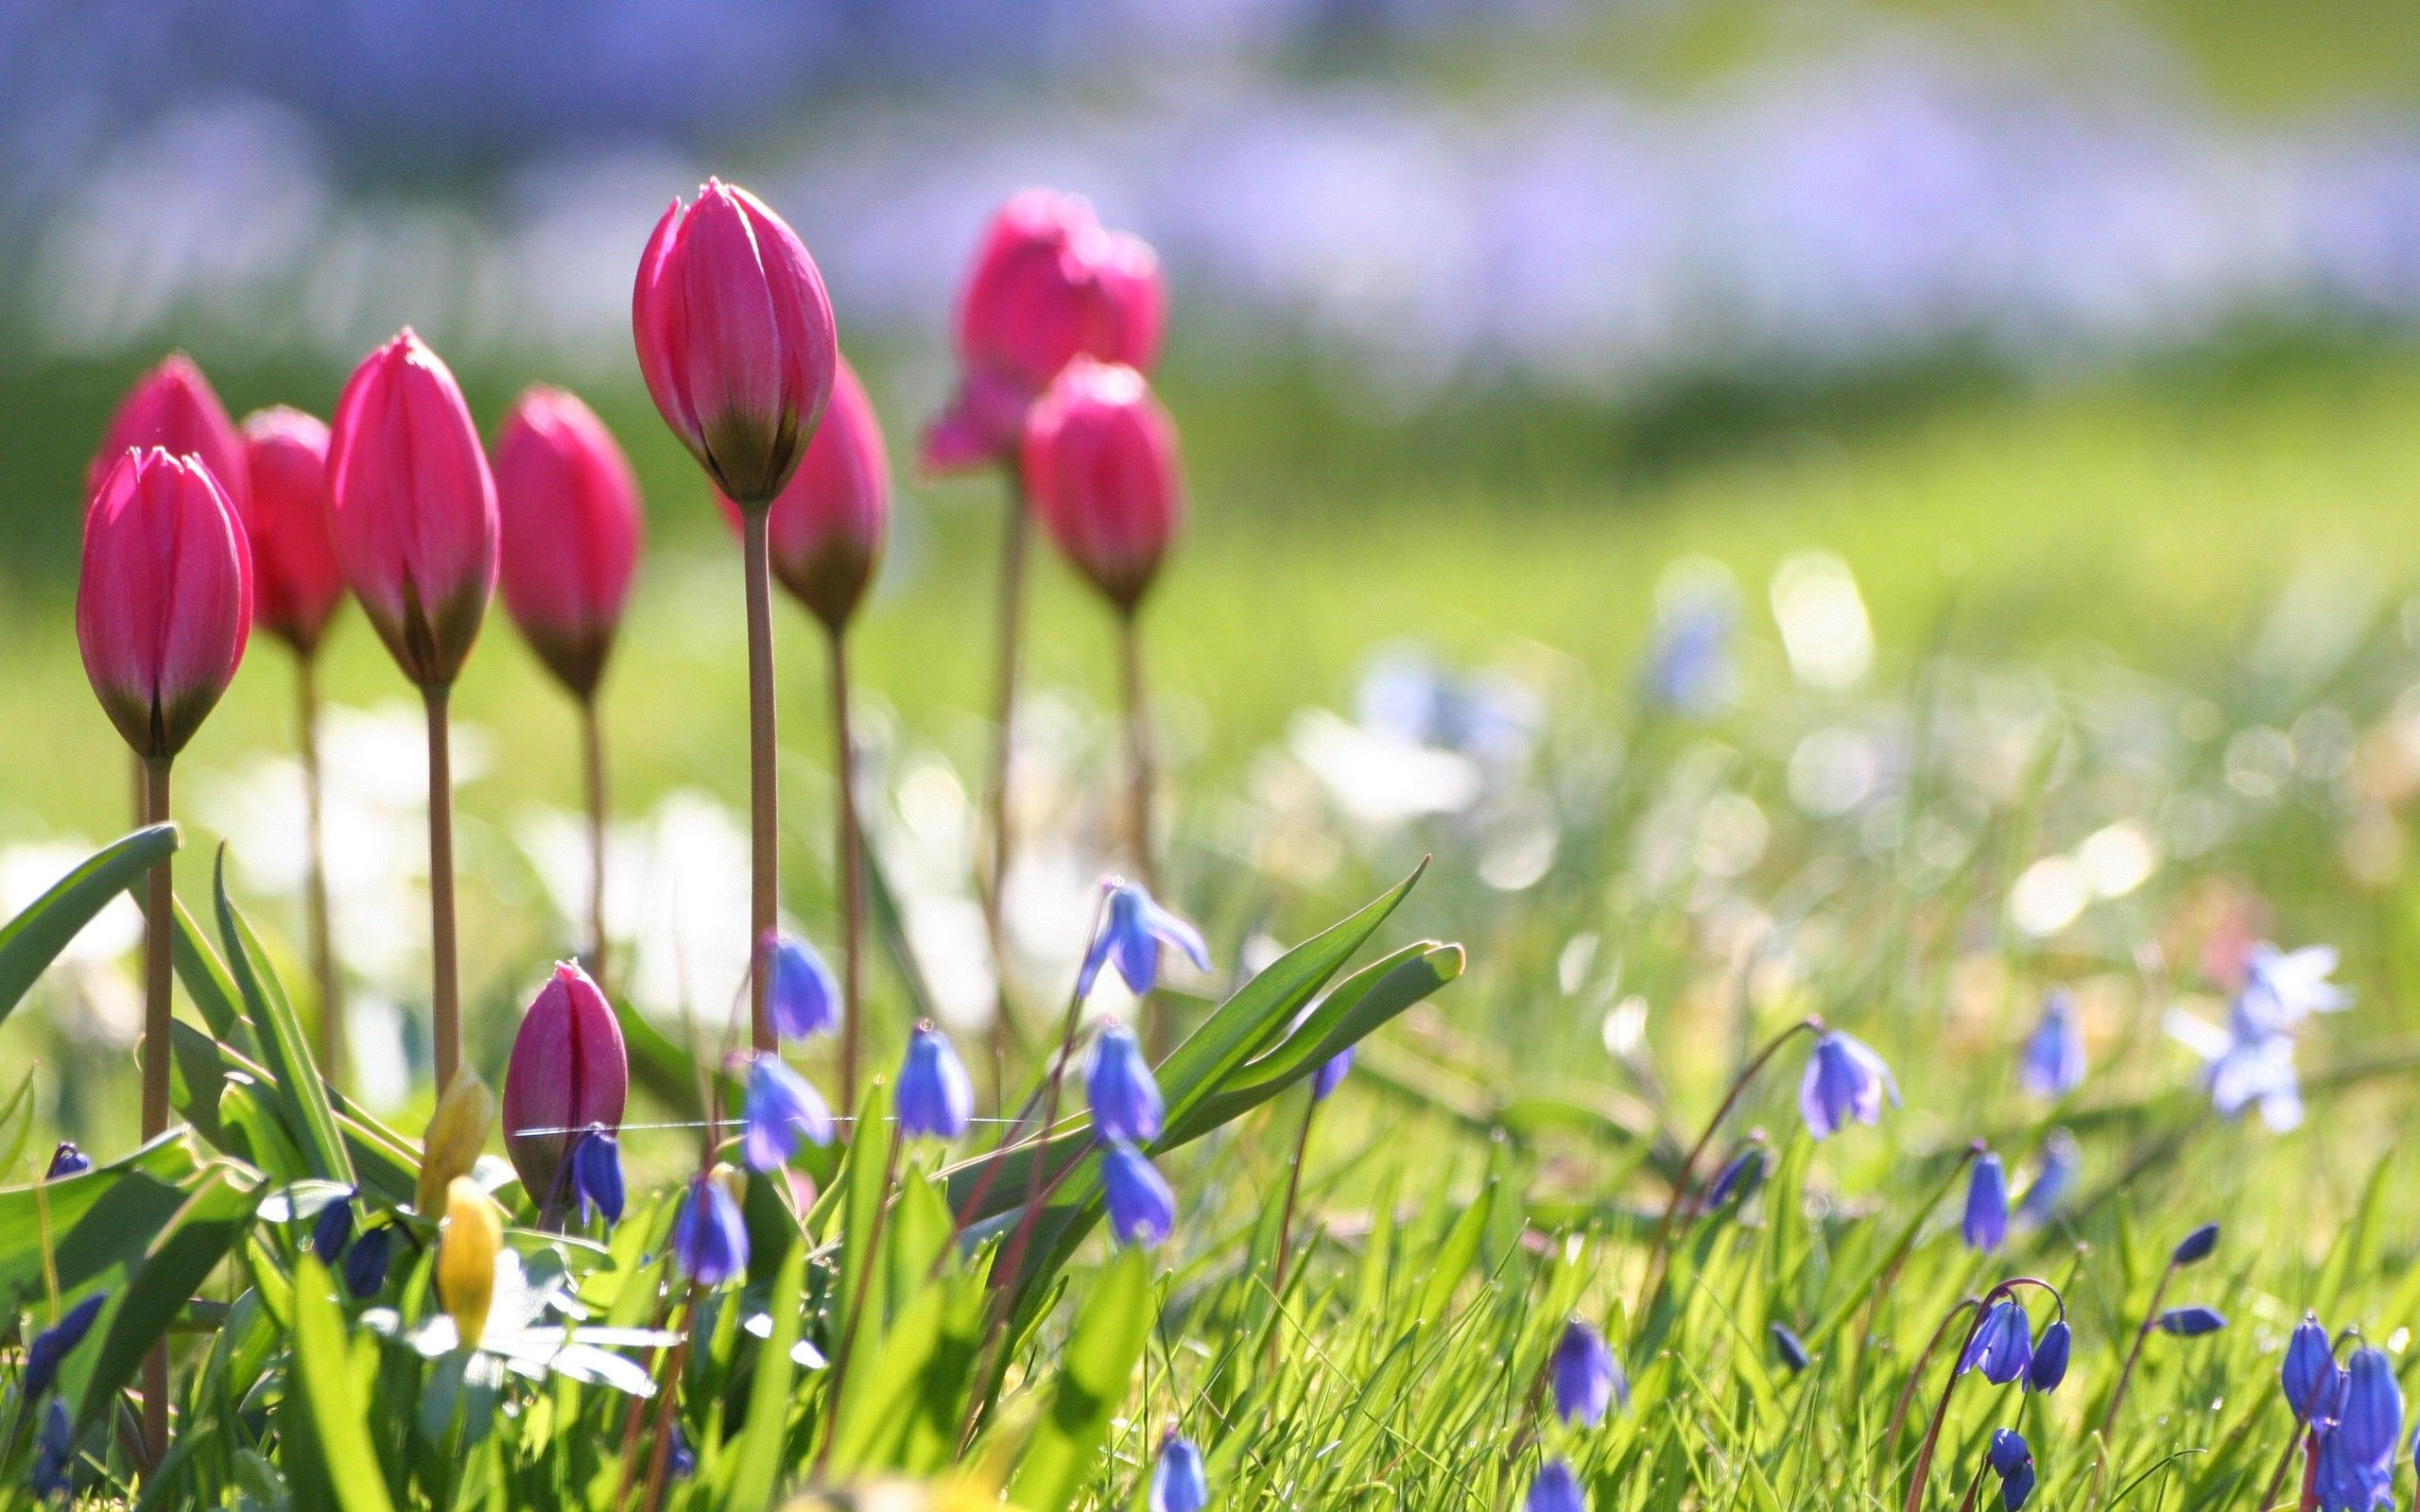 Spring flowers wallpapers pictures hd flowers pinterest beautiful flowers wallpapers voltagebd Gallery